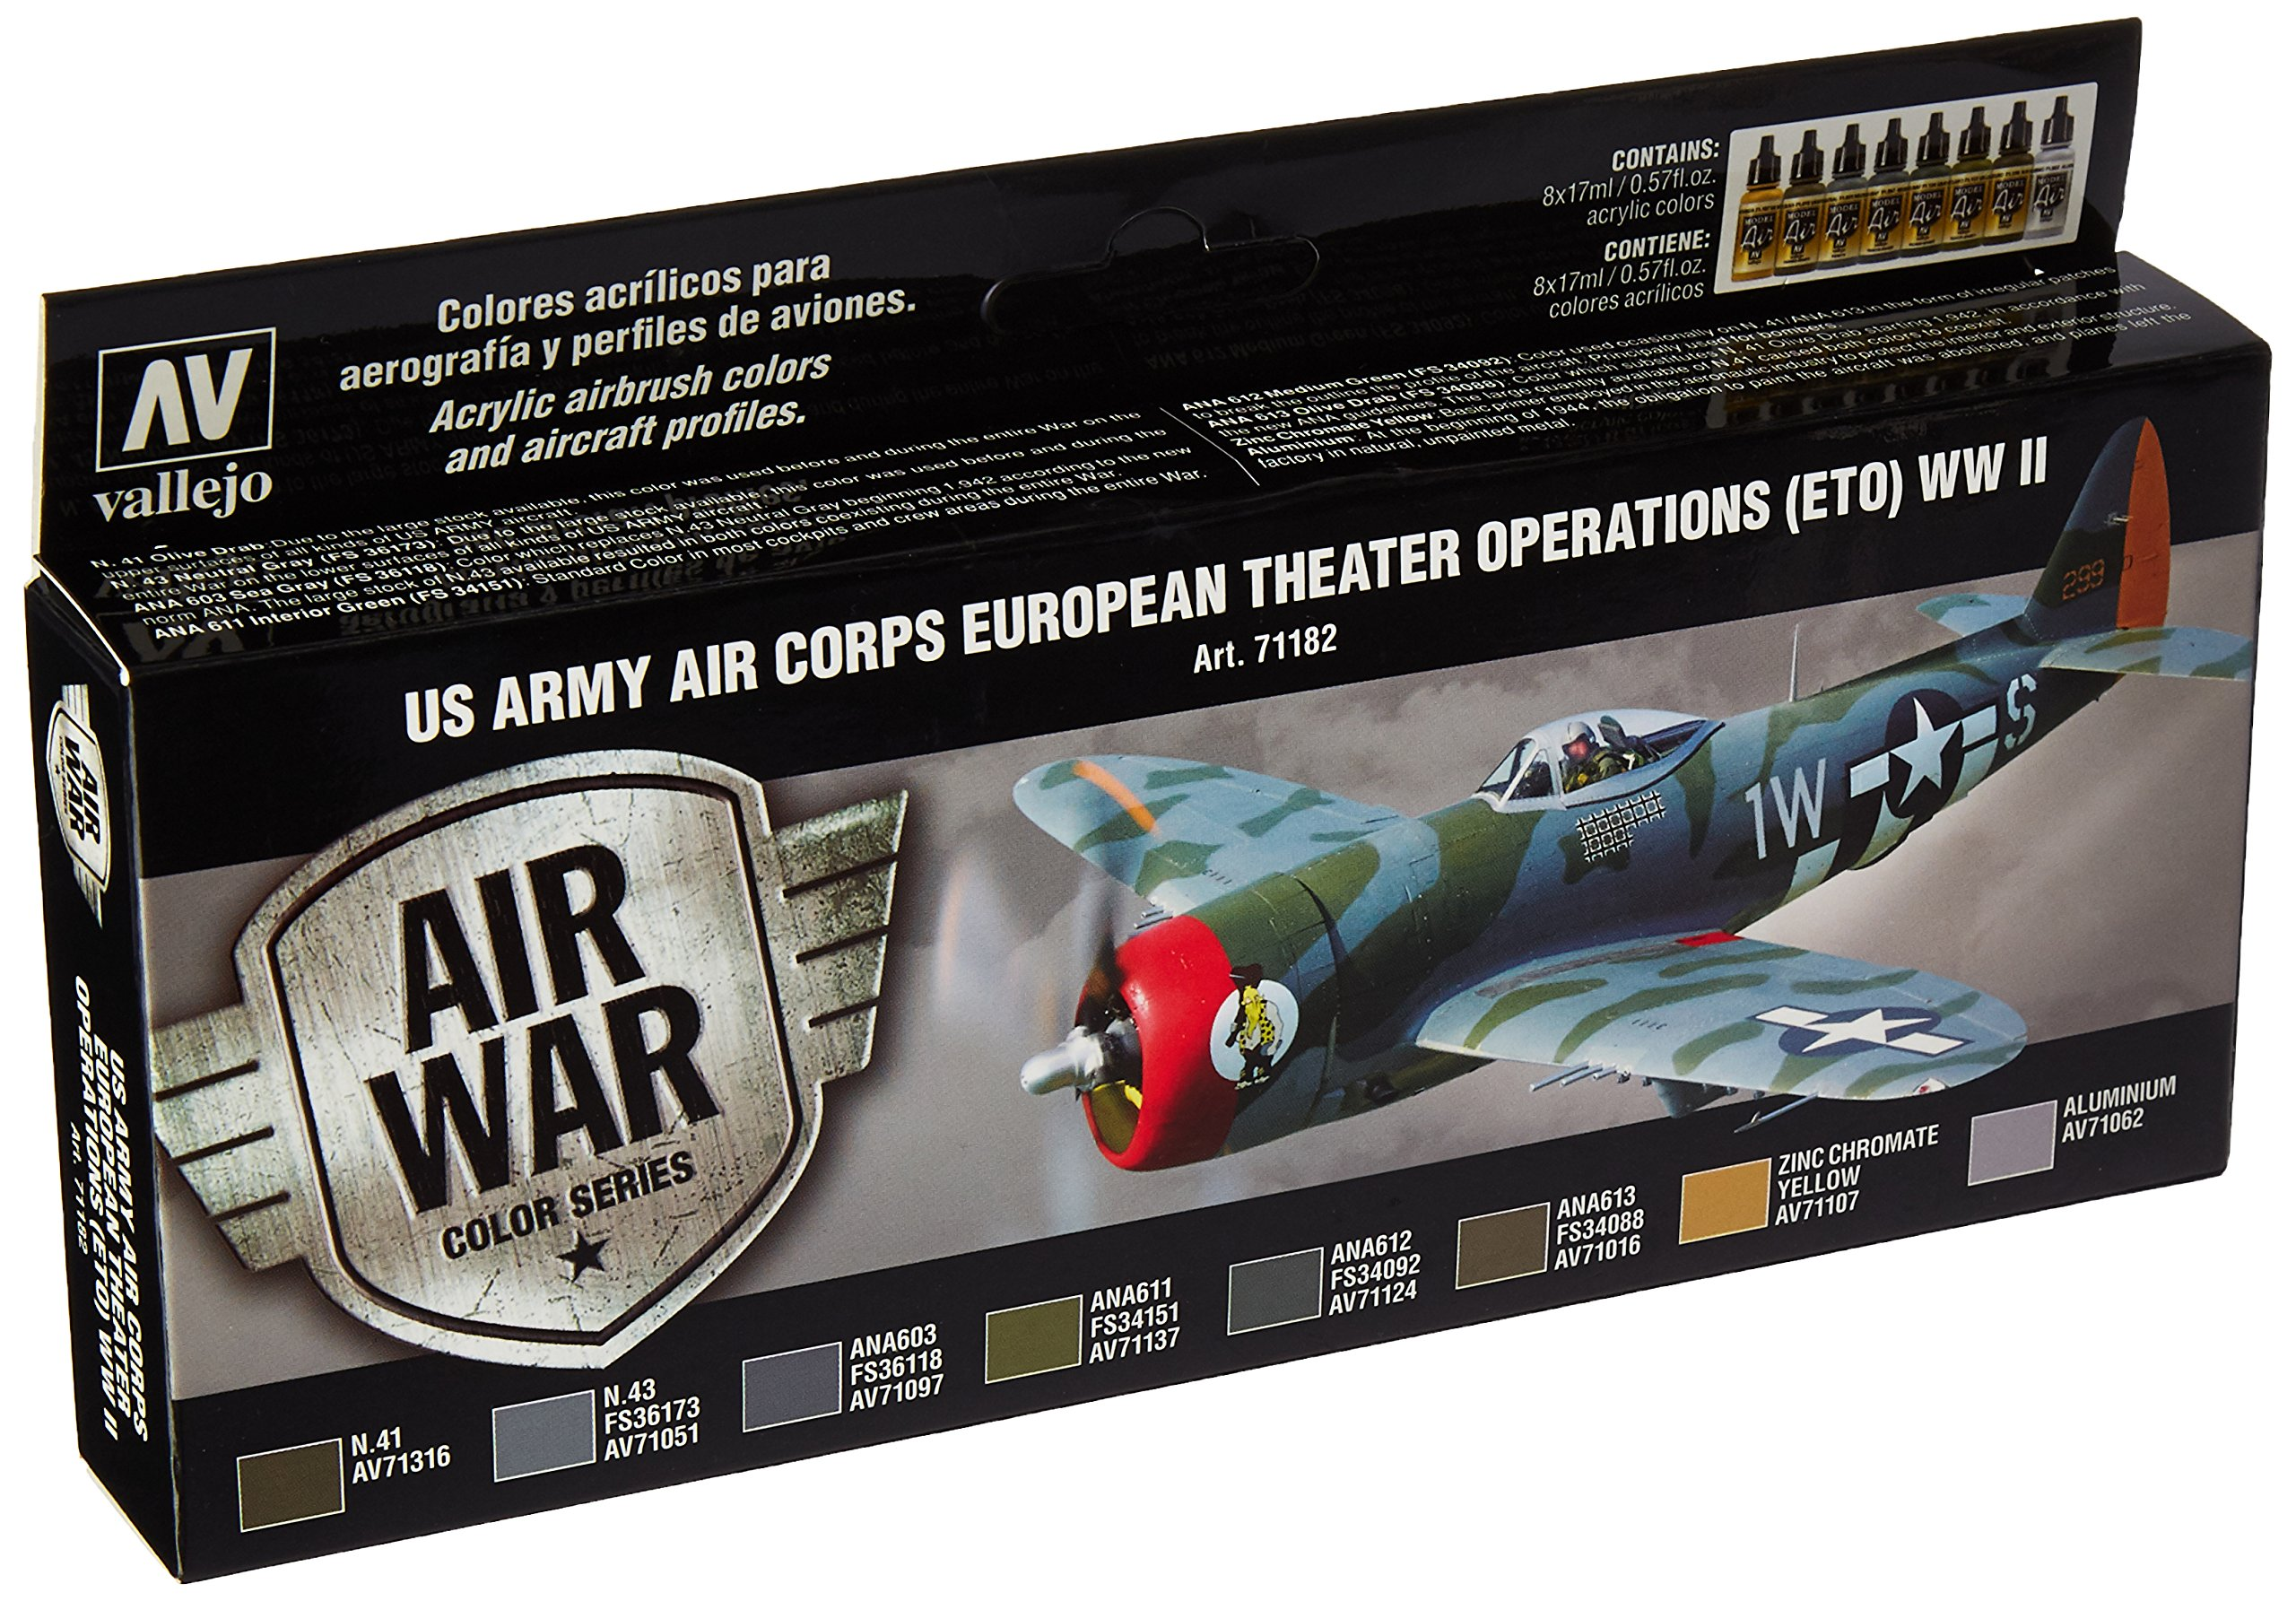 Vallejo Us Army Air Corps European Theater Operations WWII Paint